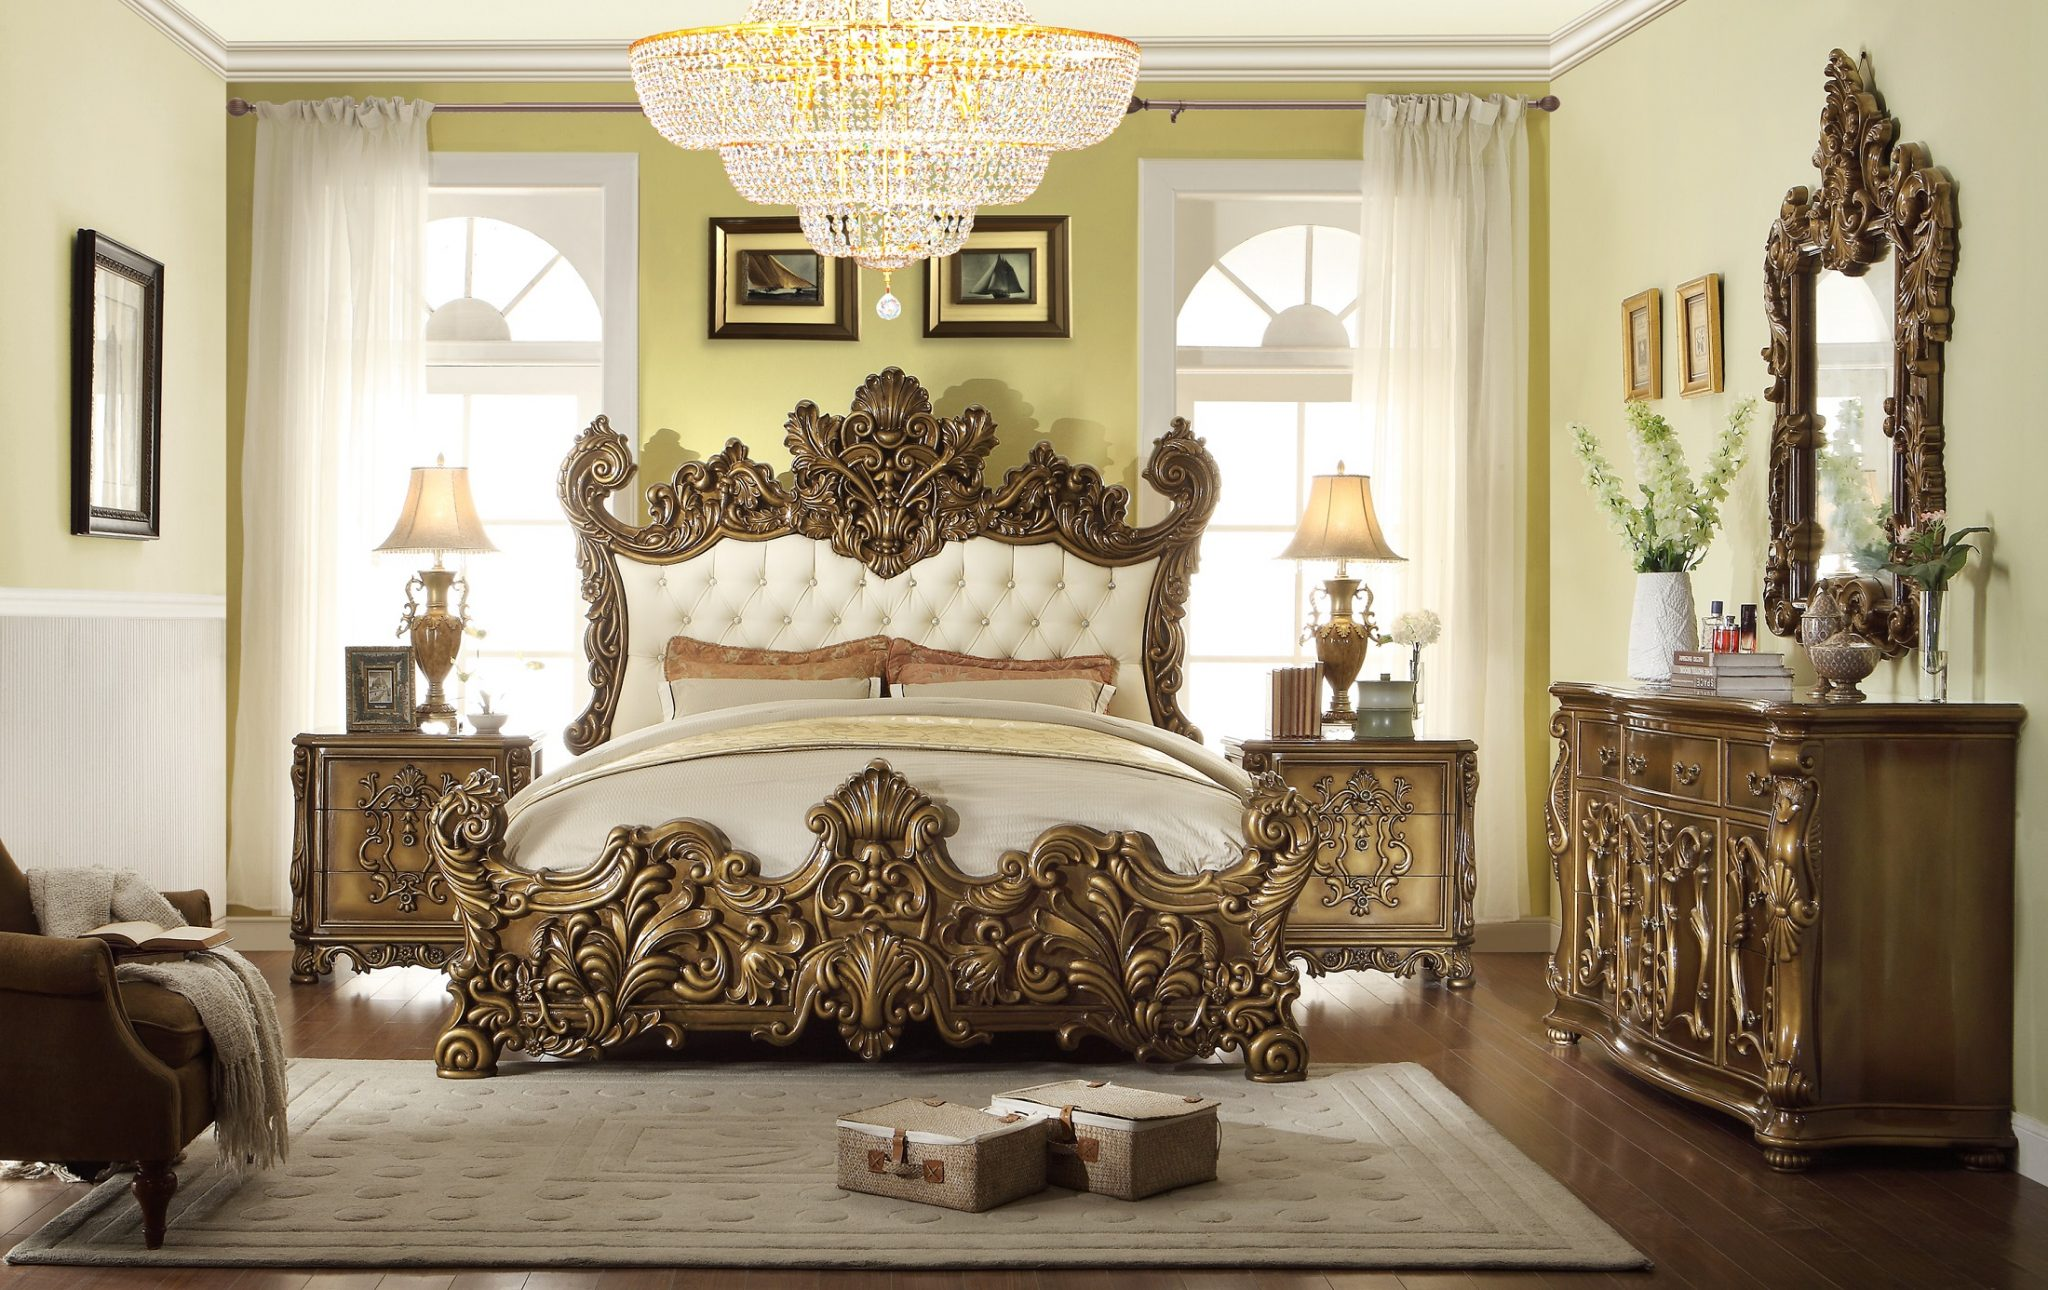 Gothic Schlafzimmer 5 Pc Hd 8008 Homey Design Golden Royal Palace Bedroom Set